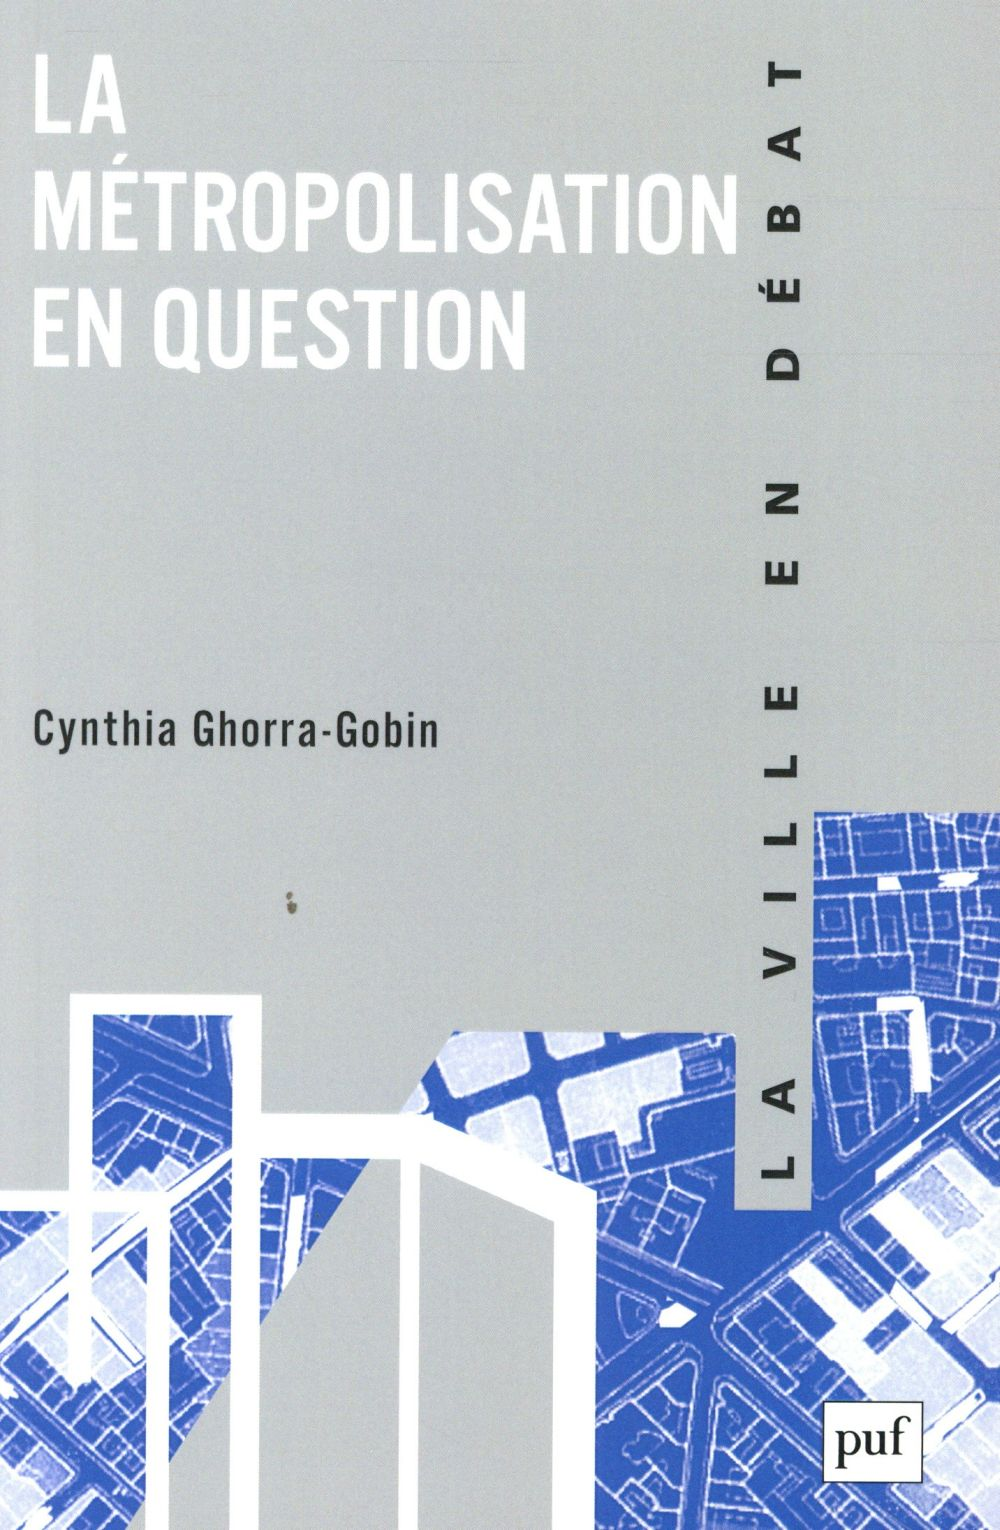 LA METROPOLISATION EN QUESTION